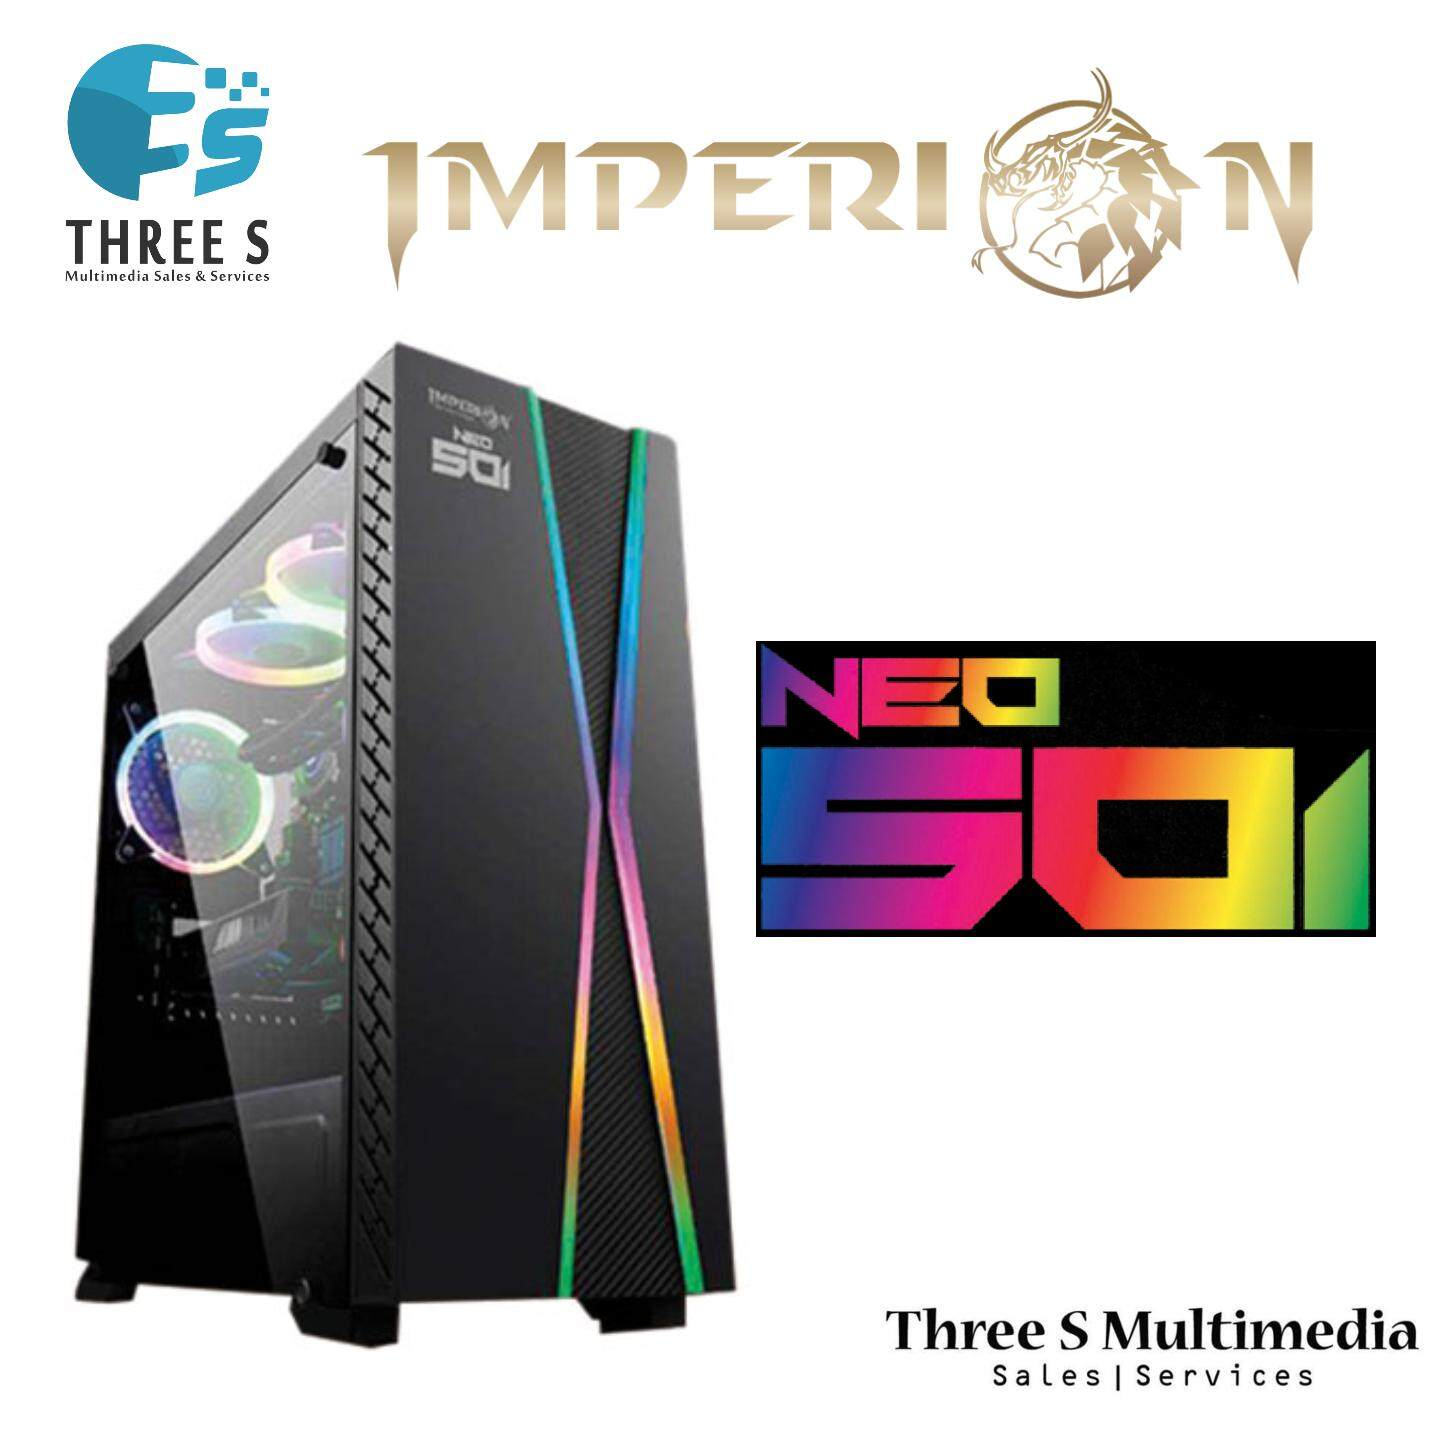 IMPERION NEO-501 DESKTOP CASING WITH RGB LIGHTING